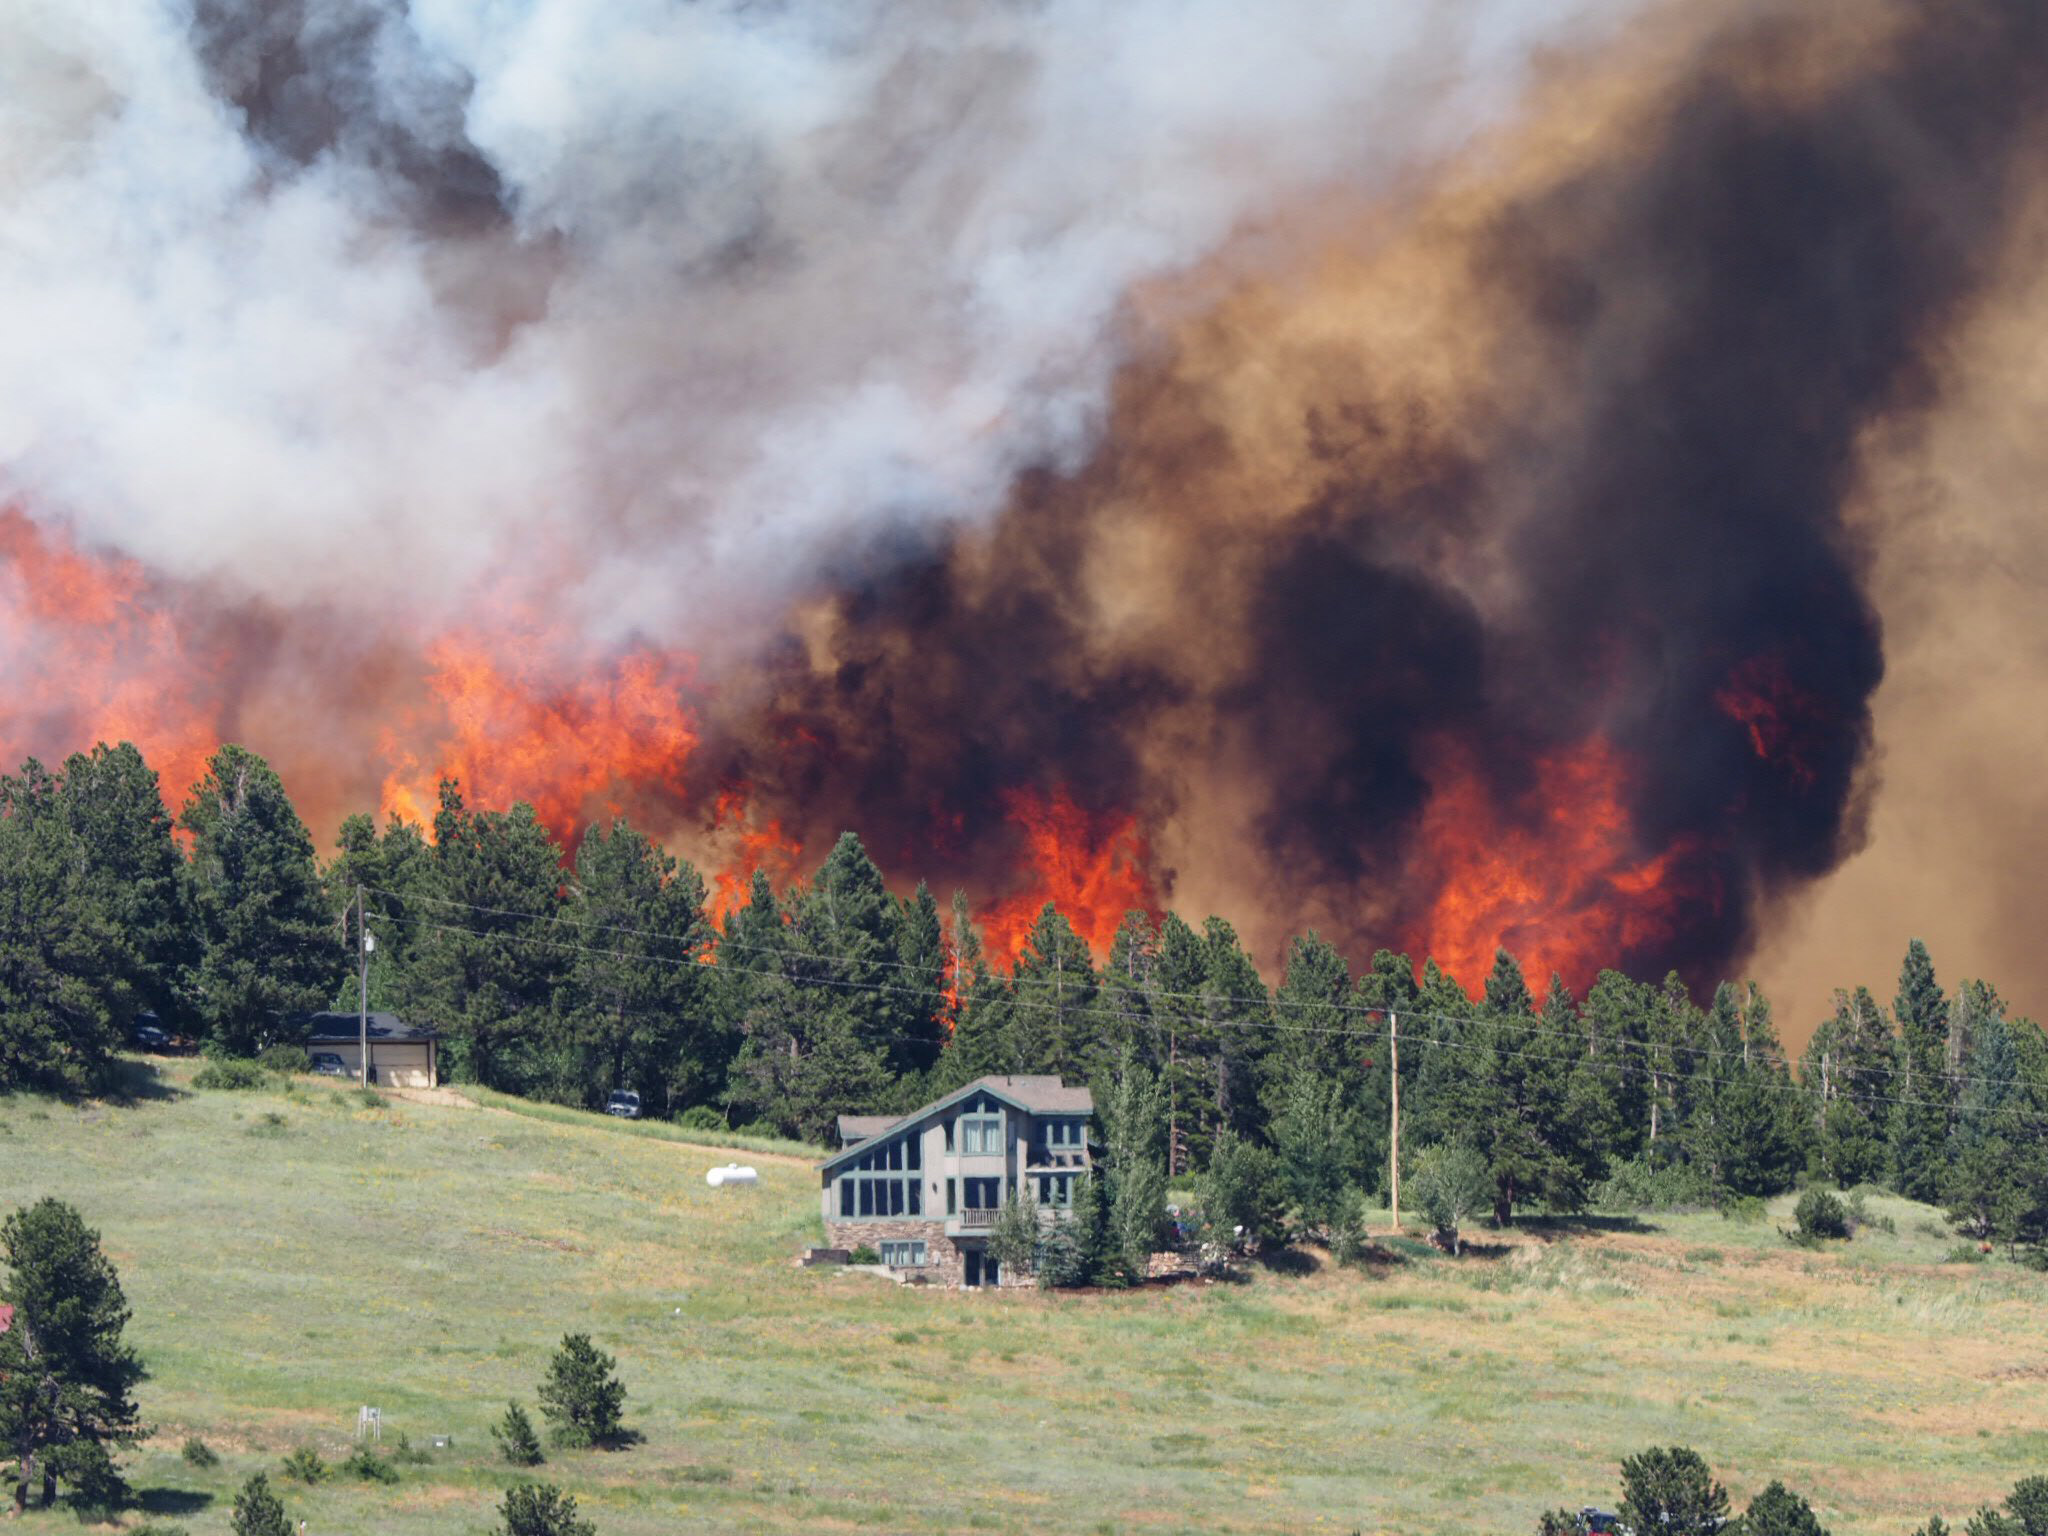 John and Annie Bonvoulior's home in the foreground of the Cold Springs Fire (credit: Joe McManus)